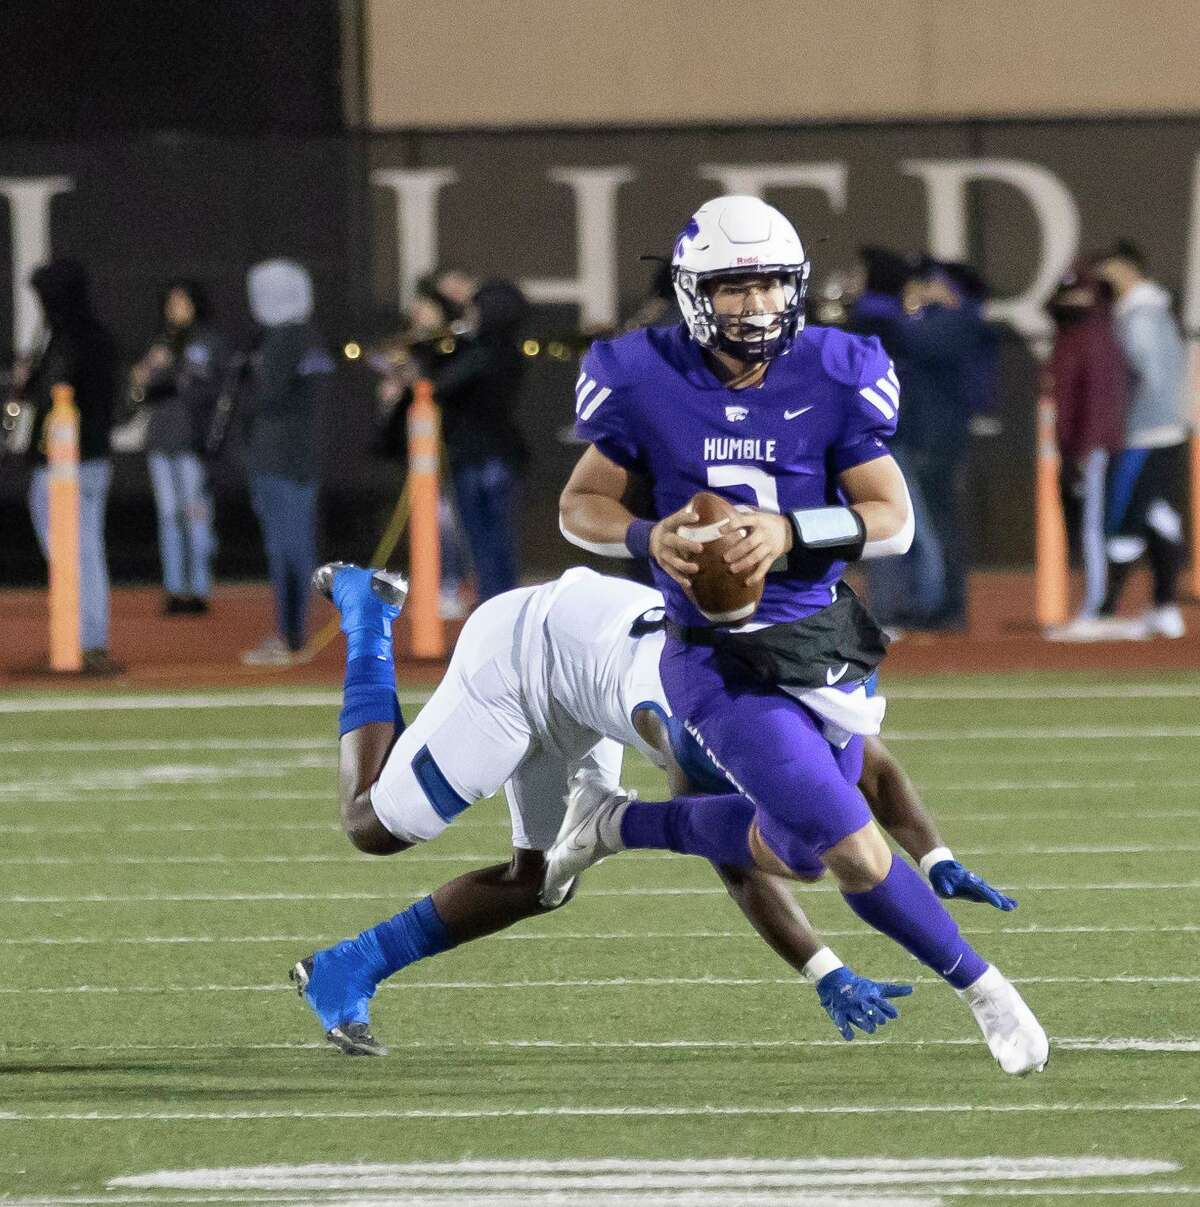 Humble quarterback Jeremiah Price Knott (2) is ran out oof bounds during the second quarter of a District 21-6A football game against C.E. King at Turner Stadium, Thursday, Dec. 3, 2020.